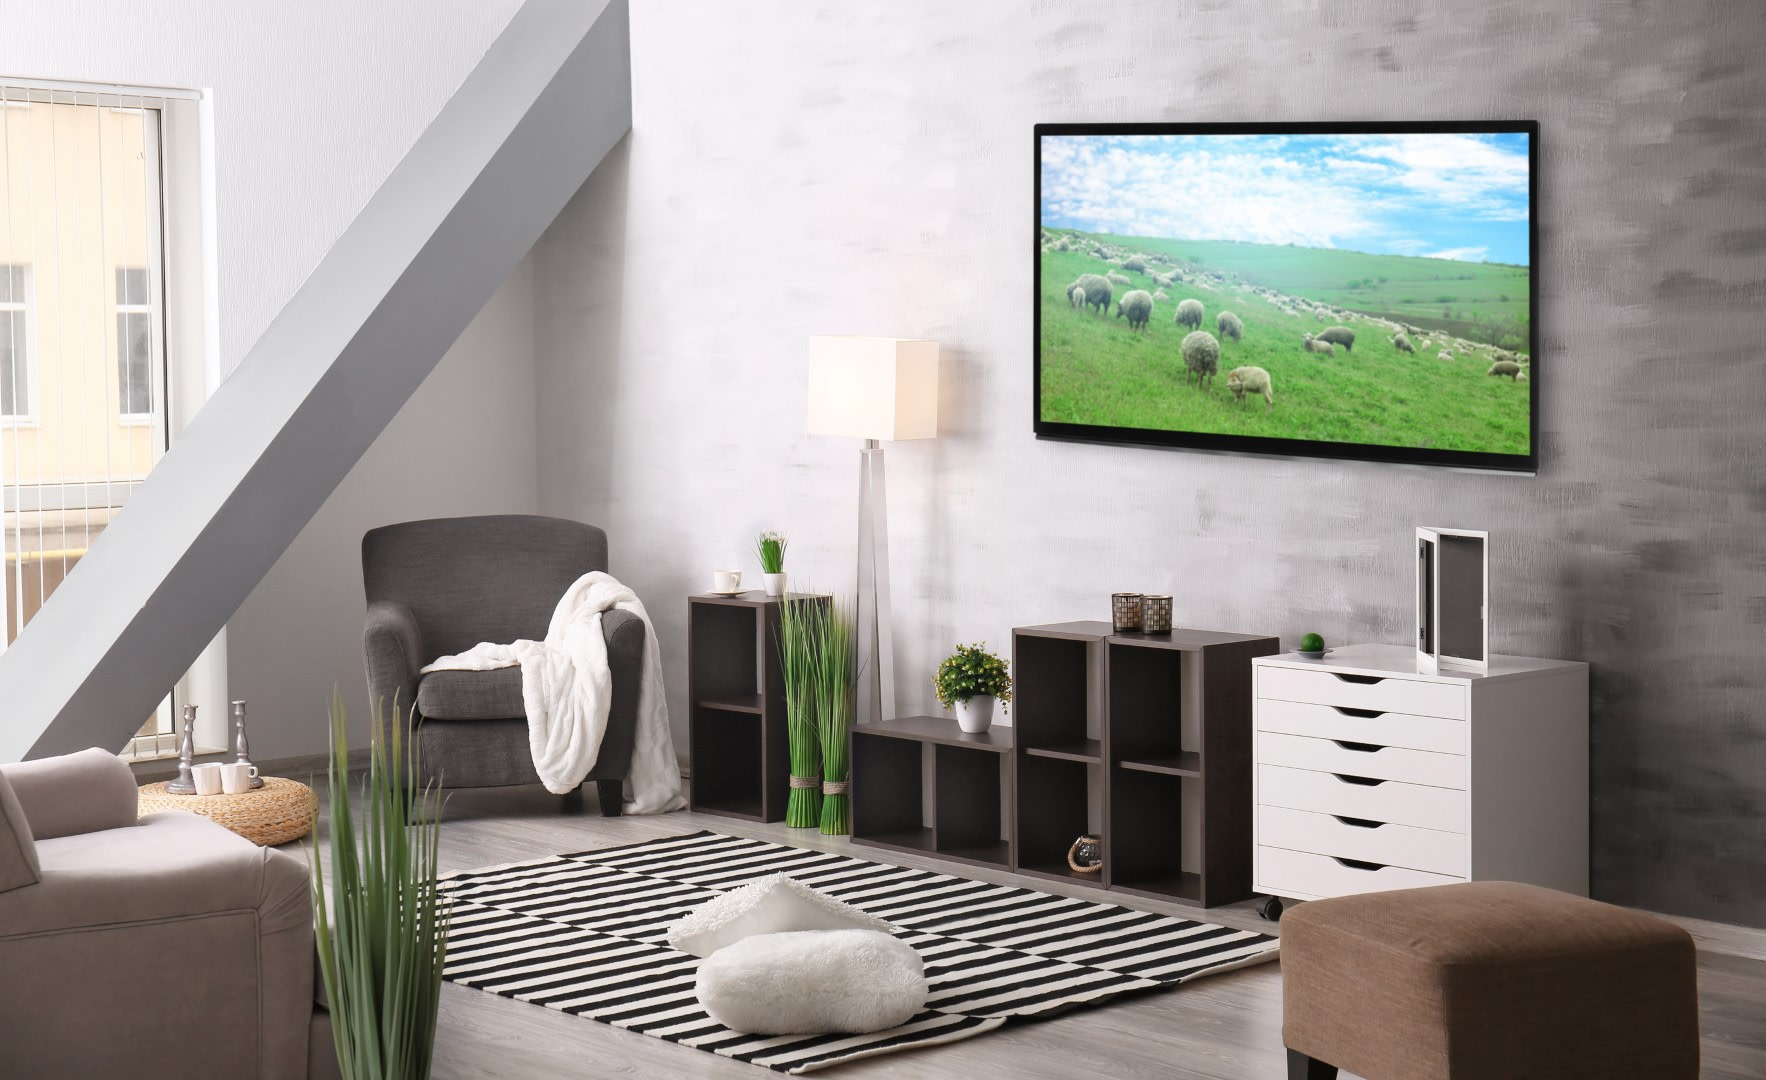 An image related to Unbiased Cheap VIZIO TVs Review